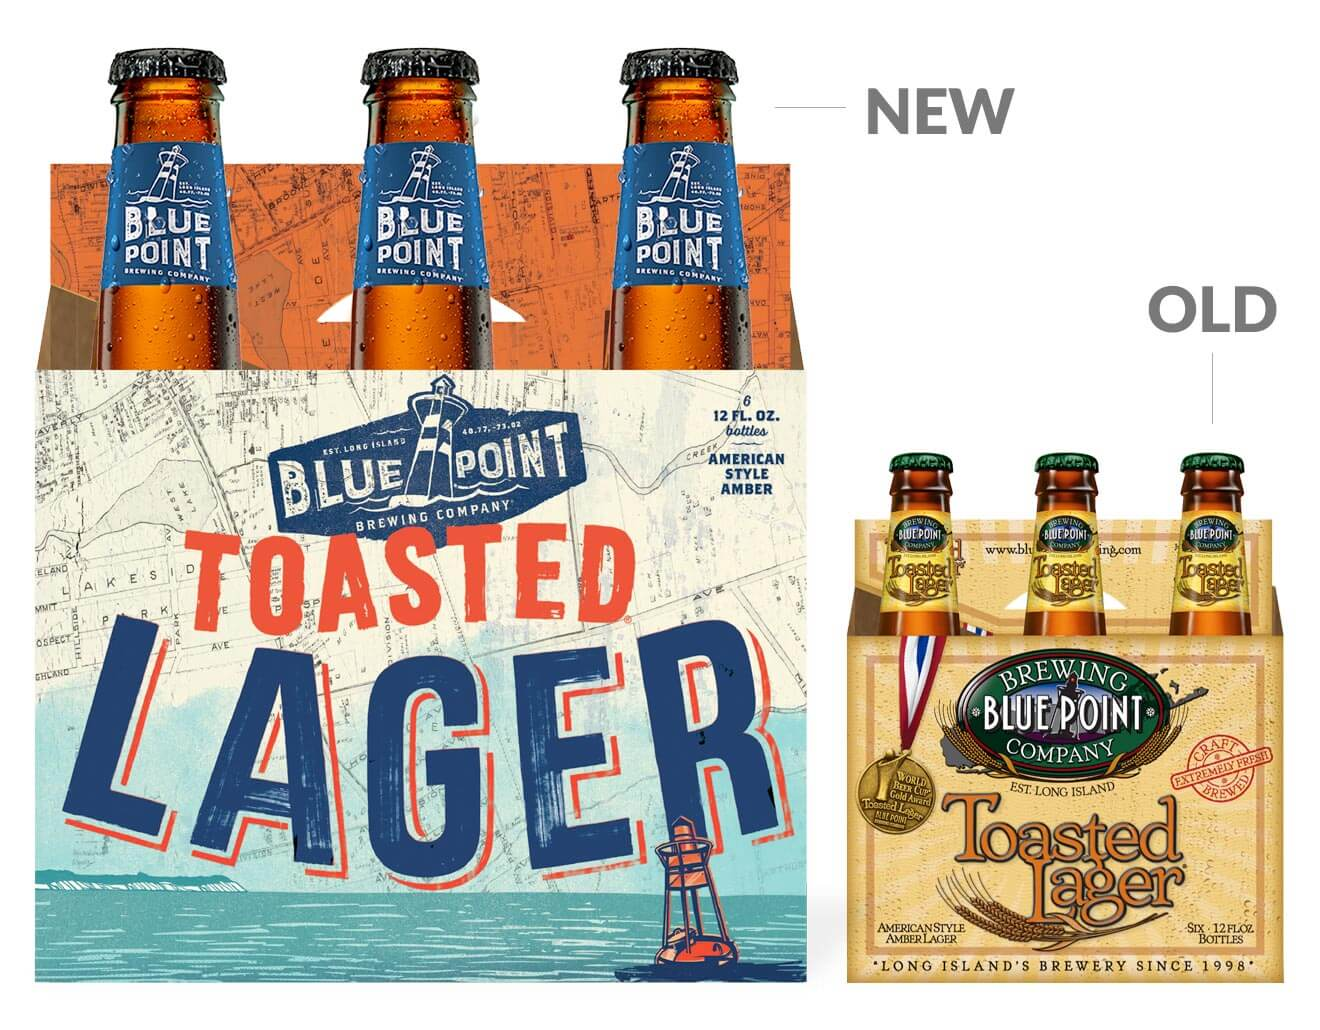 Blue Point Brewing Co. 6-Pack Package Design, Old and New